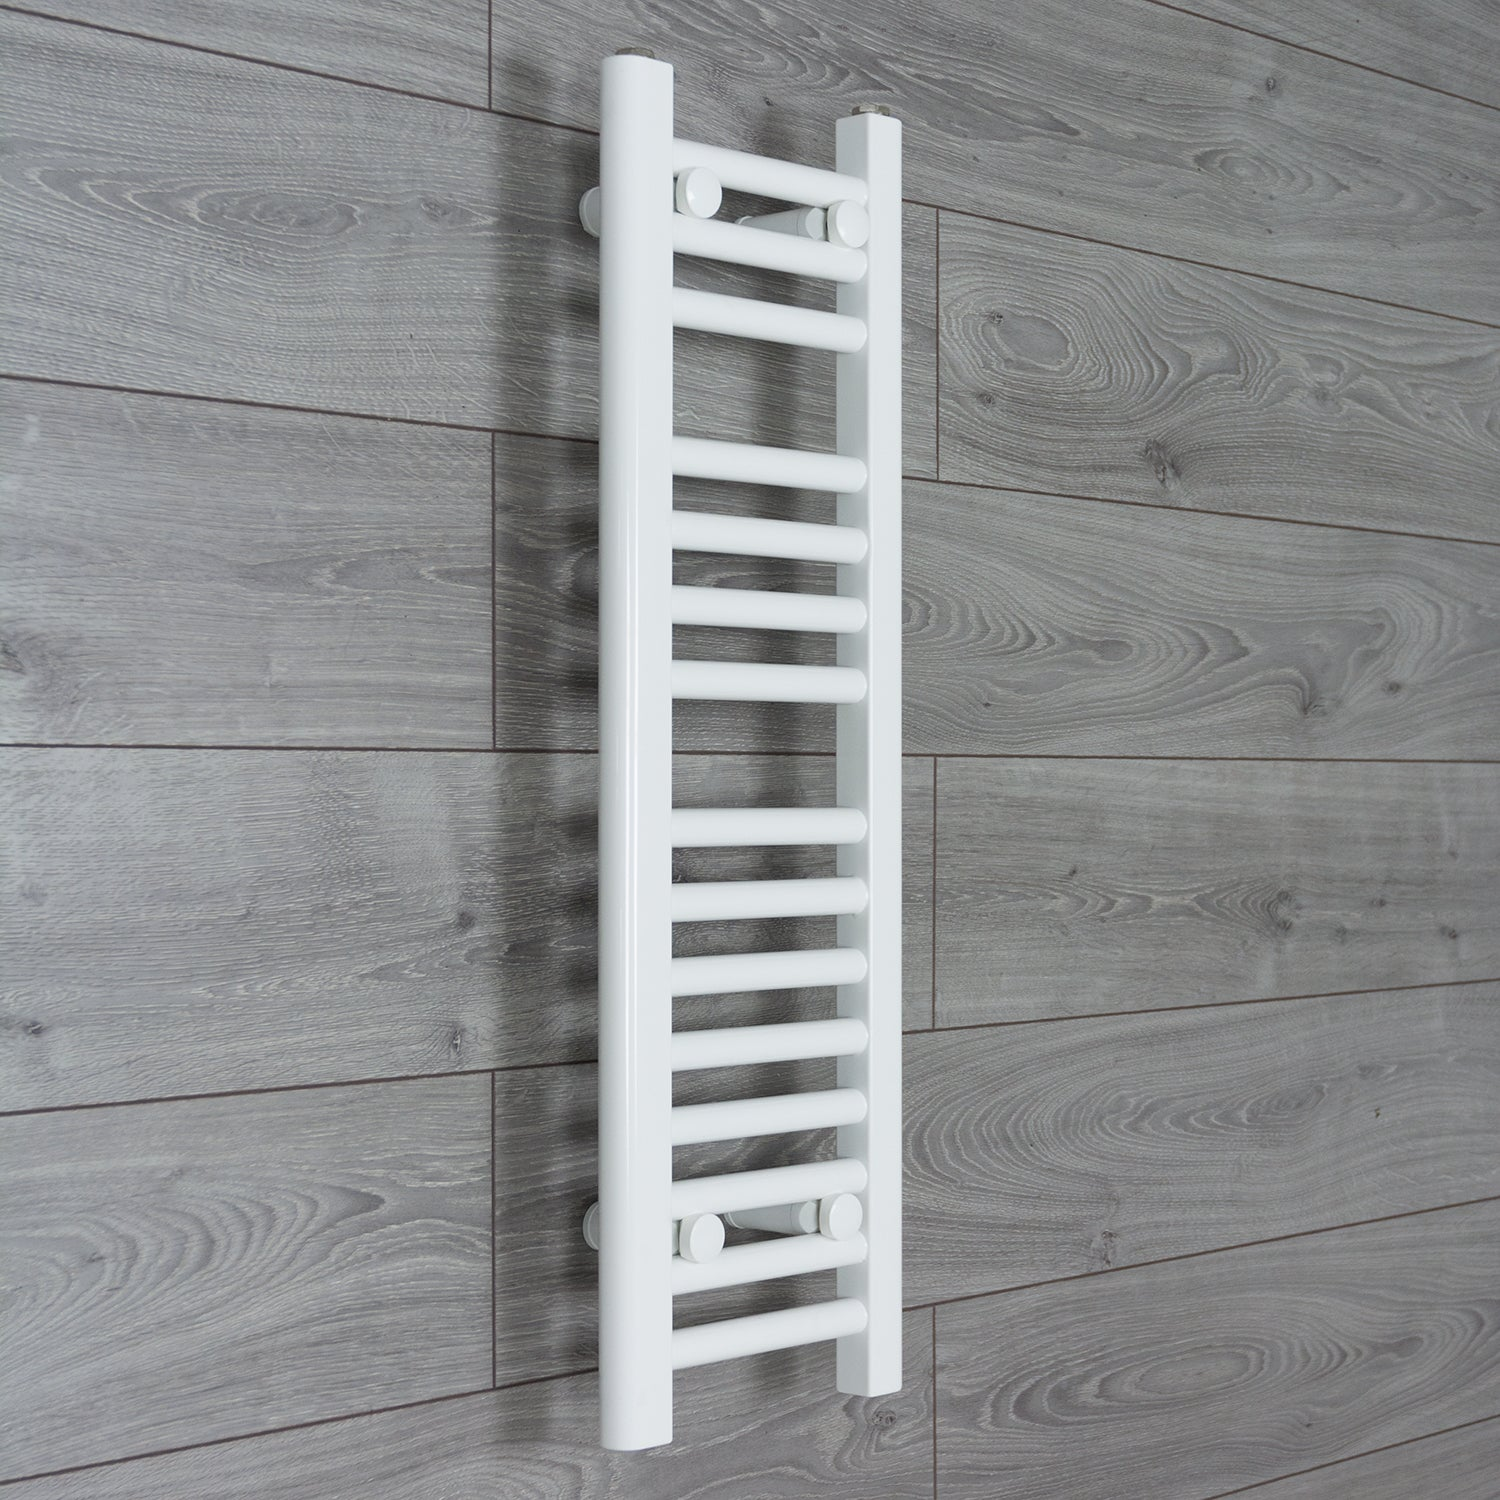 250mm Wide 800mm High Flat WHITE Pre-Filled Electric Heated Towel Rail Radiator HTR